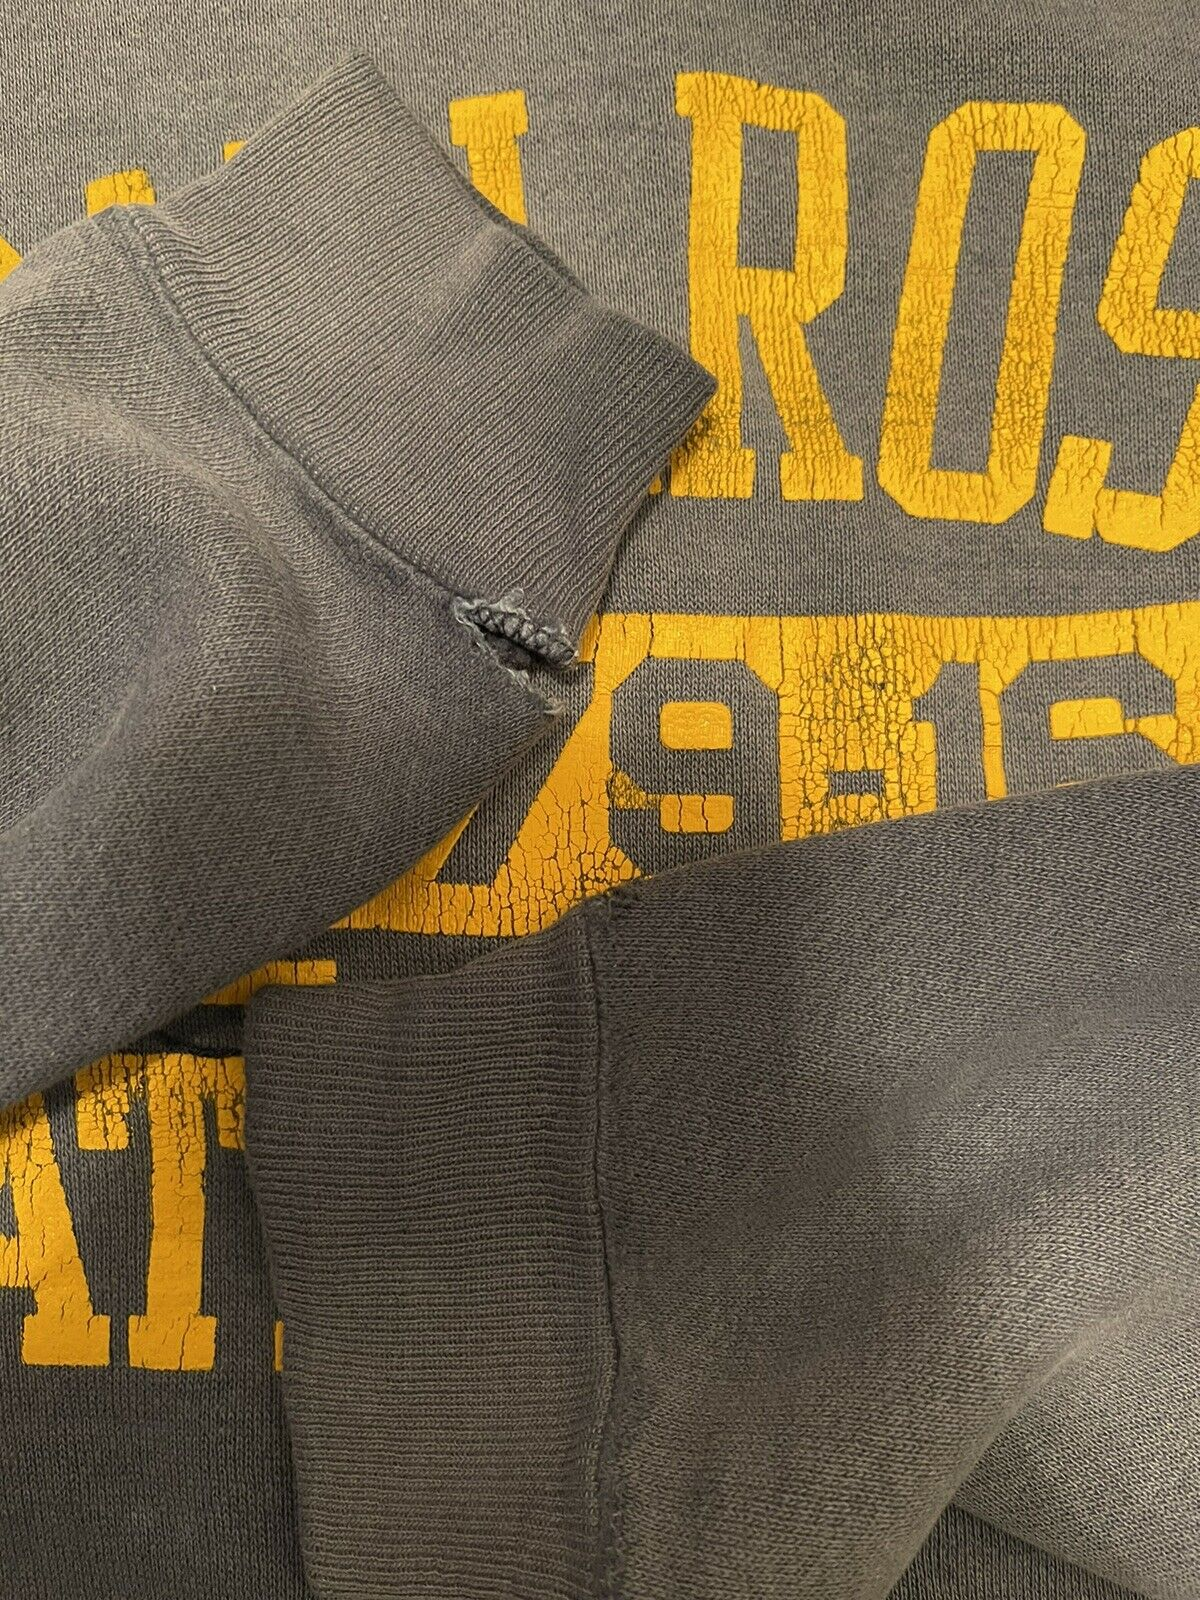 VTG 70s Sun Faded Russell Gold Tag M Hoodie Sweat… - image 10